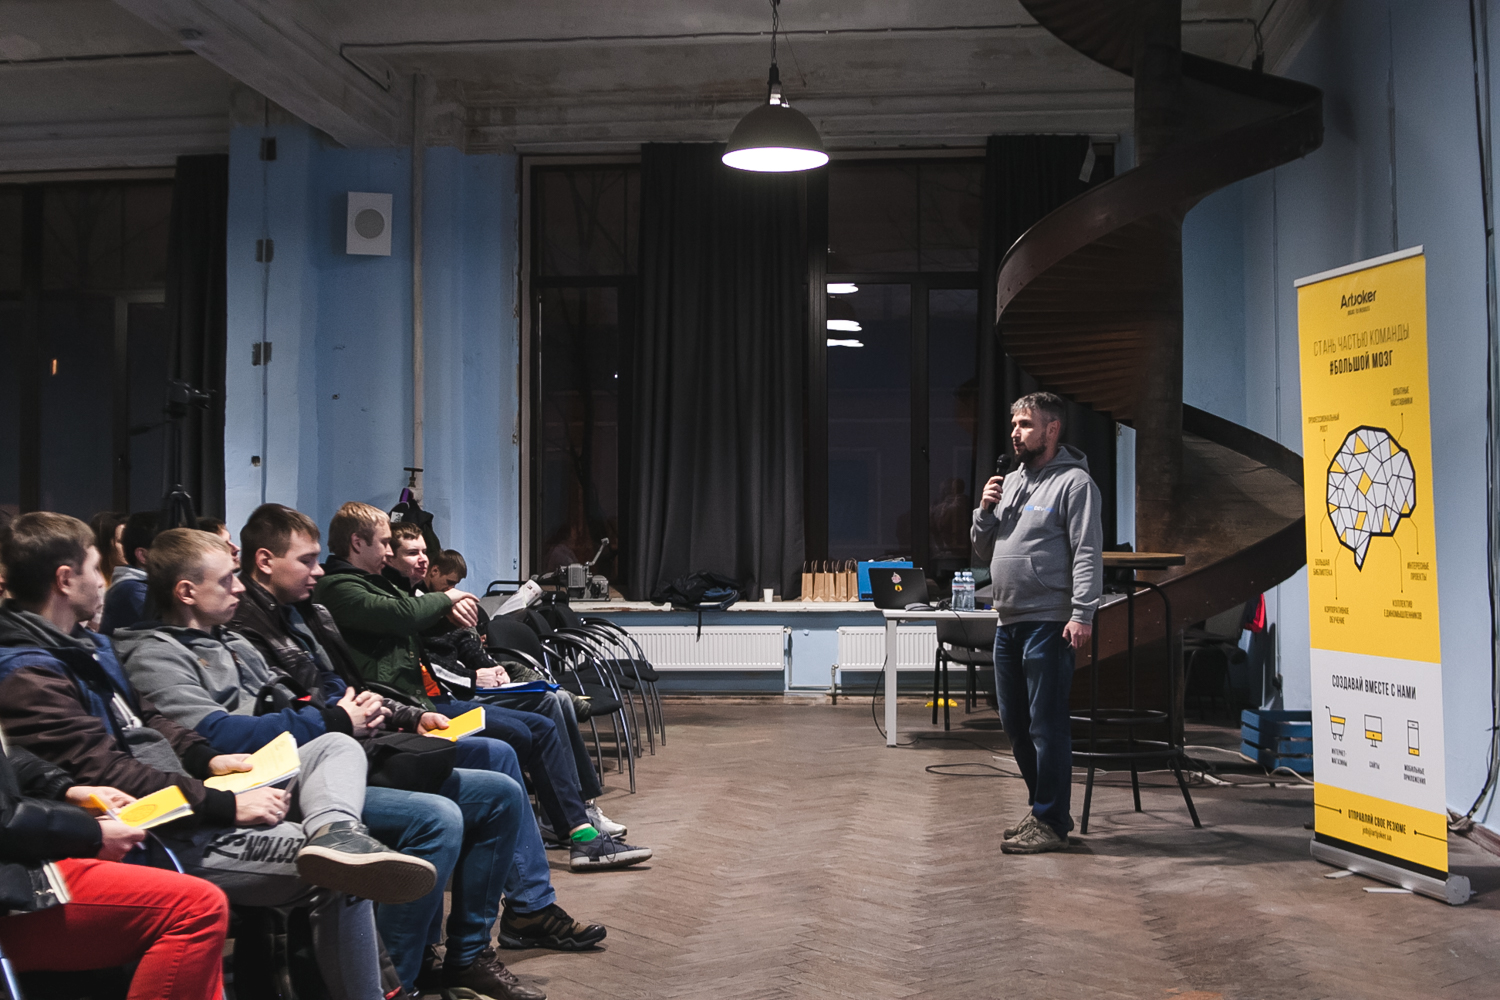 image3 Big Brain Club - Android Evening - let's make mobile apps better